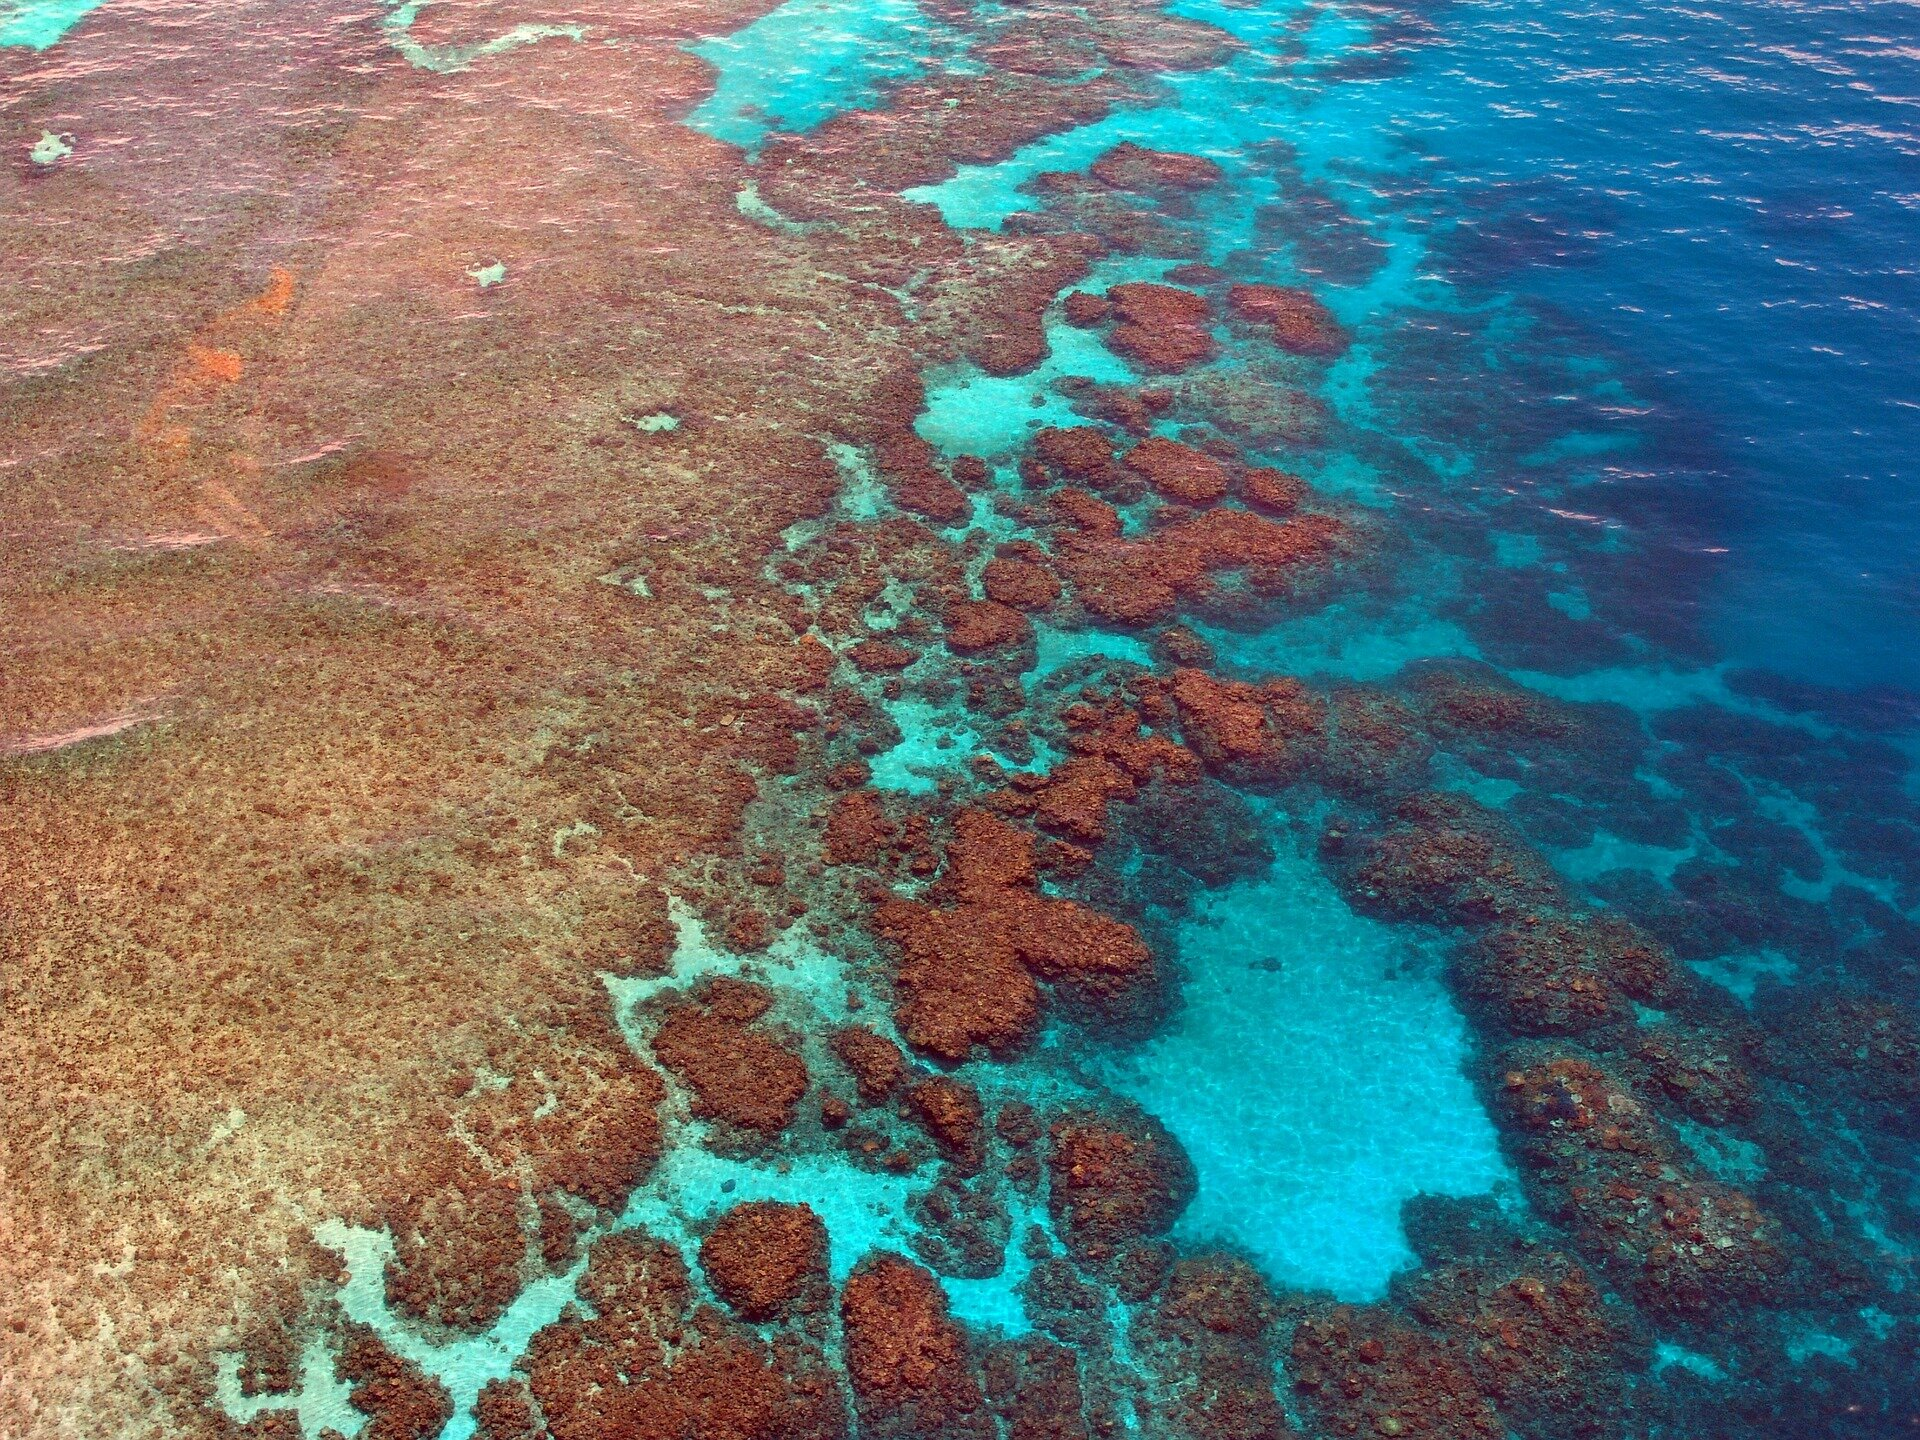 Genes unlock clues to the evolution and survival of the Great Barrier Reef